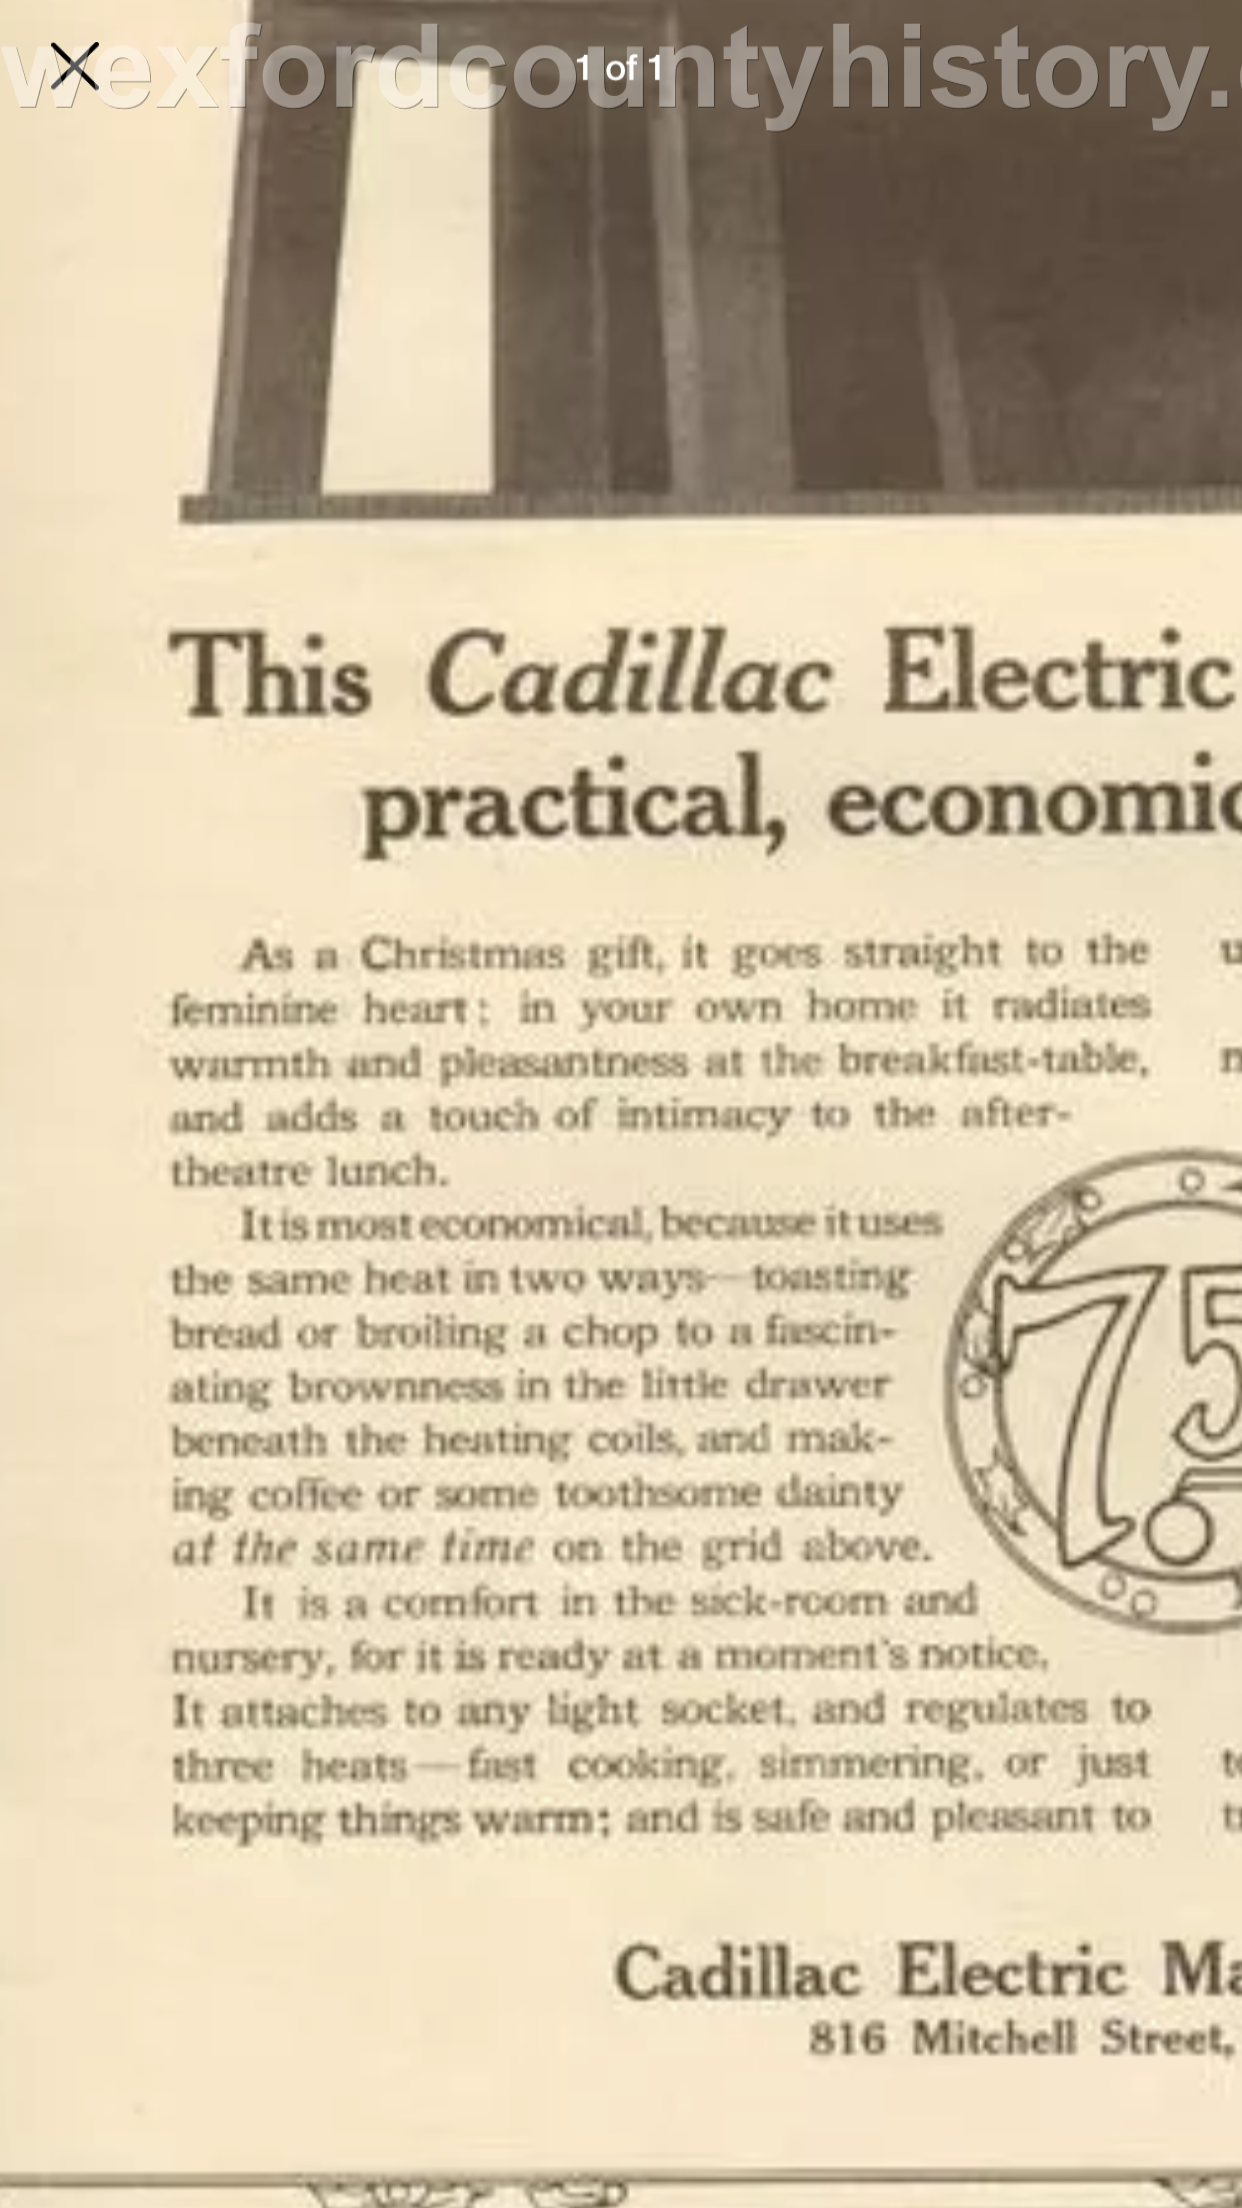 Cadillac-Business-Cadillac-Electric-Manufacturing-Company-Toaster-1